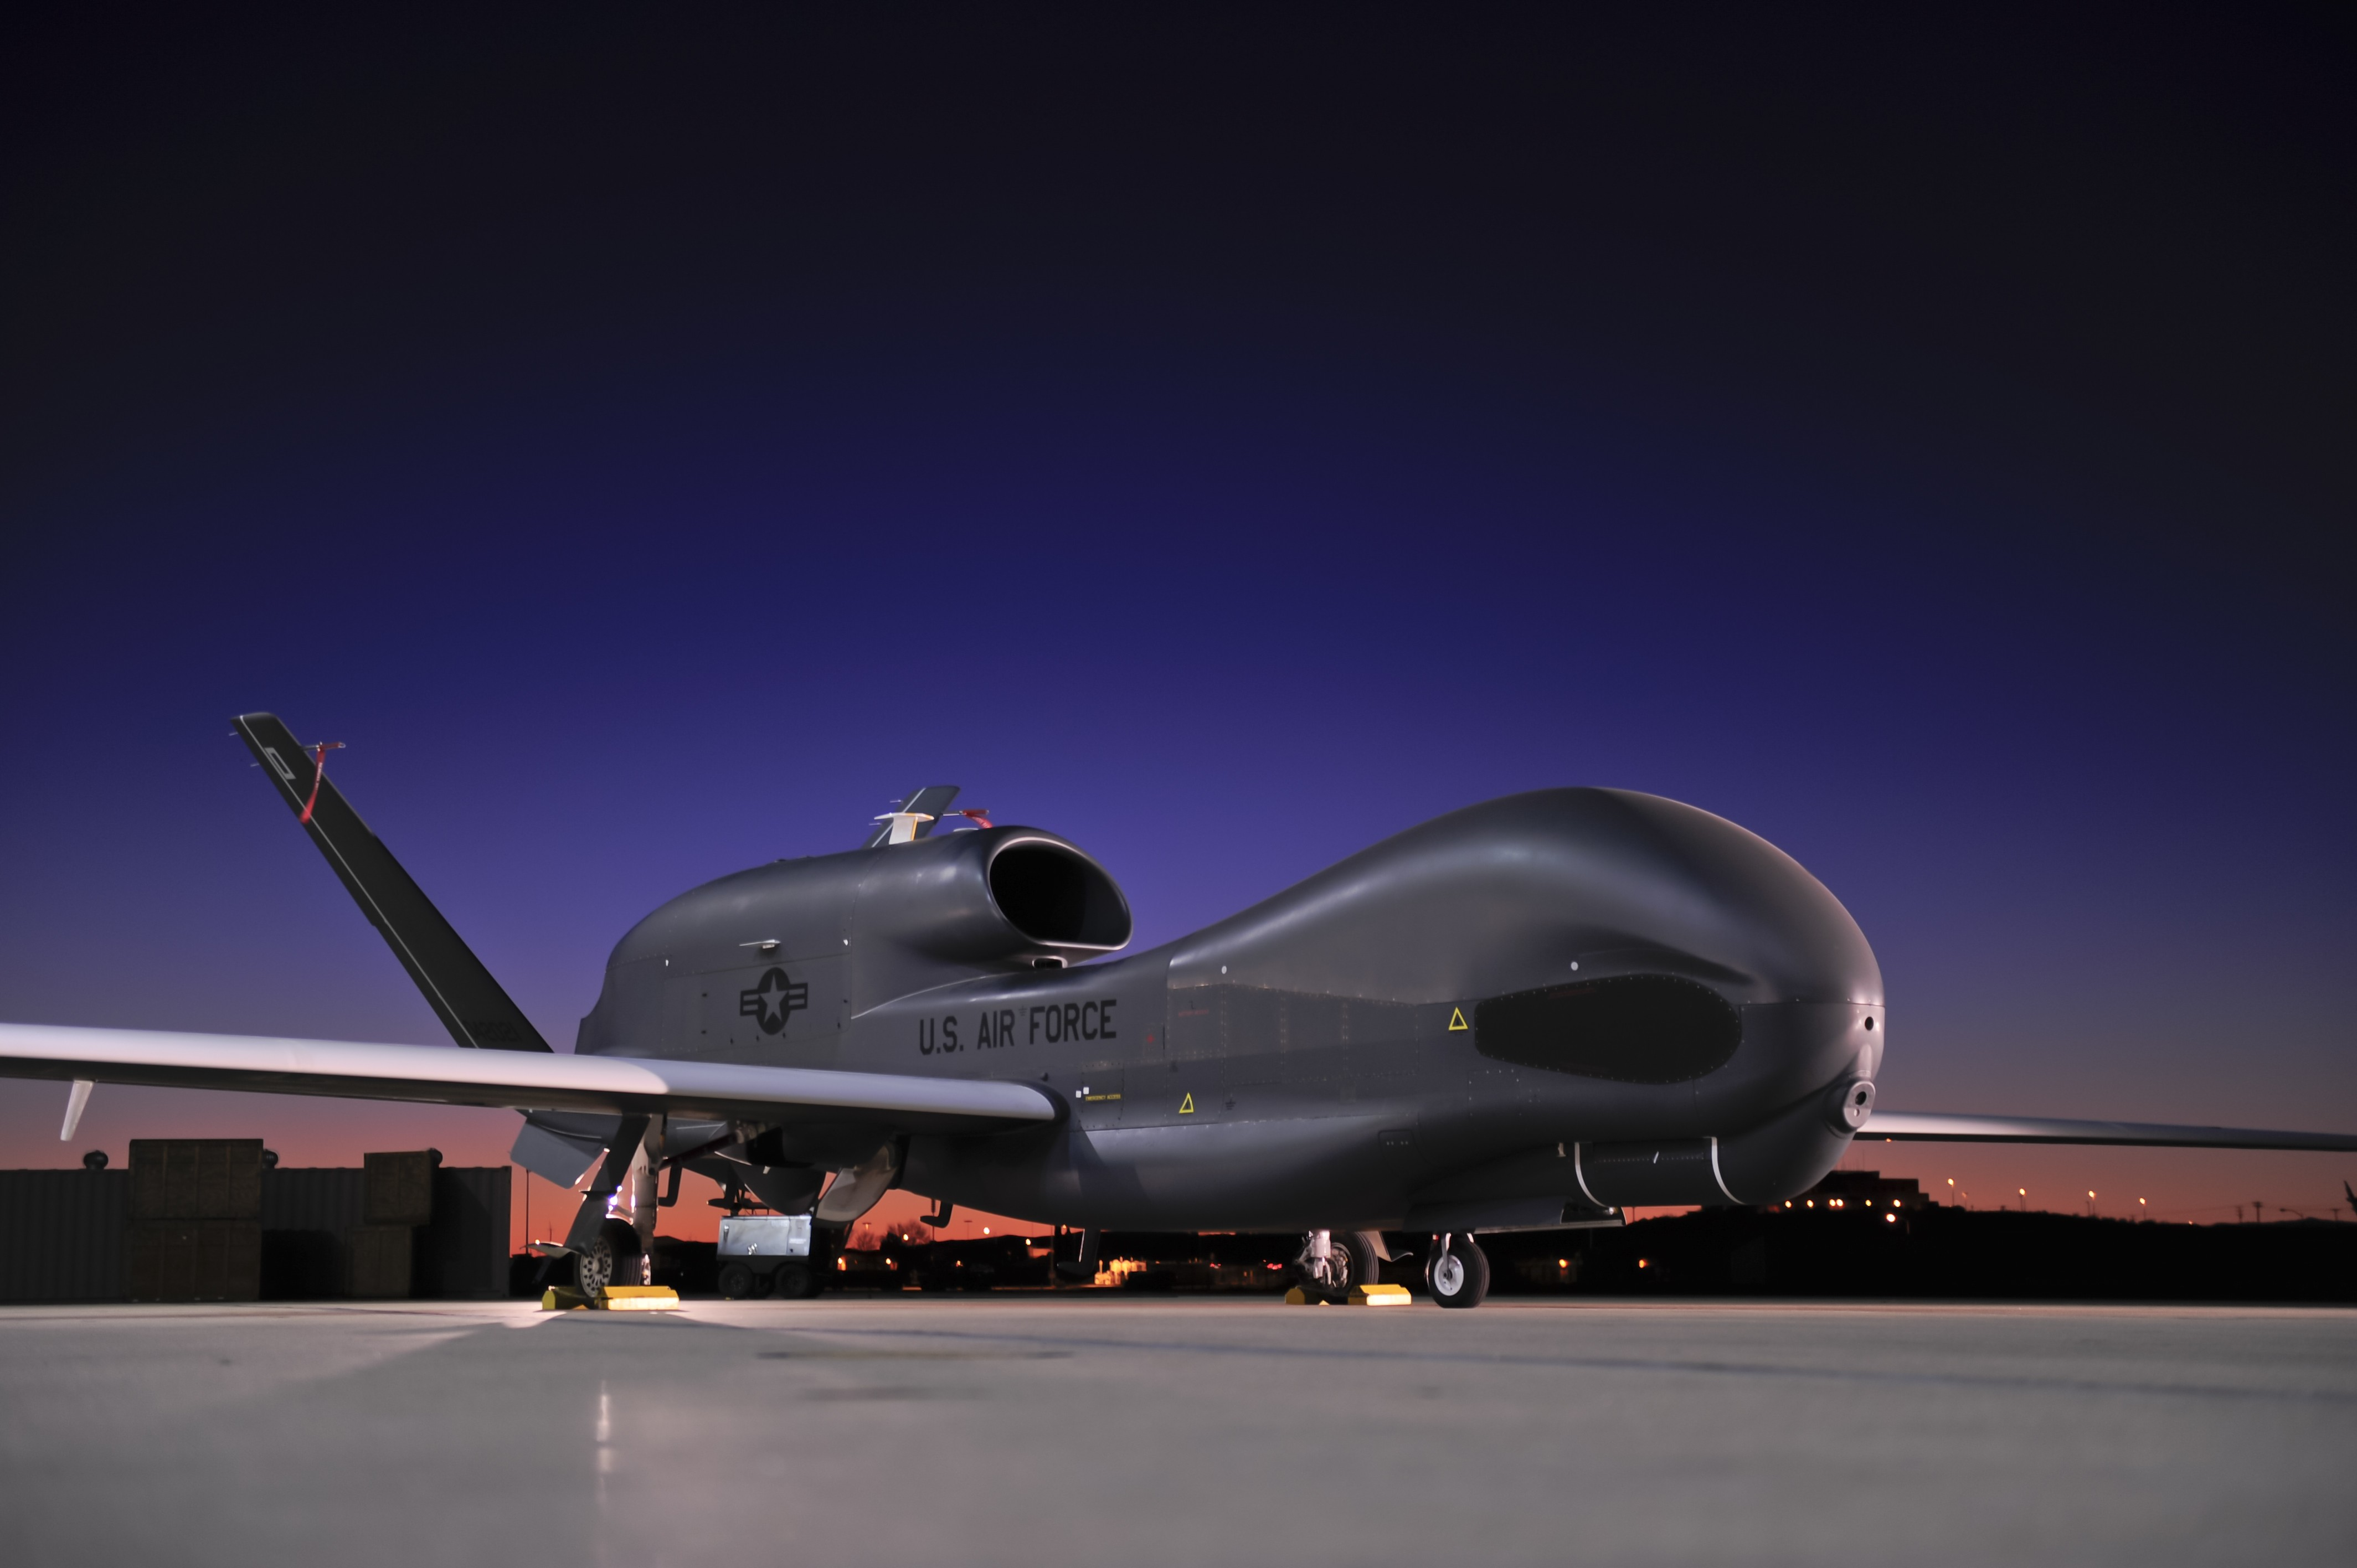 size of a reaper drone with Rq 4 Global Hawk Northrop Grumman Drone Surveillance Uav 1423 on File 138th Attack Squadron   General Atomics MQ 9B Reaper 09 4066 furthermore File RQ 4 Global Hawk UAV 3 returns to US 2006 02 20 also Predator also 707539 further Cost Per Flight Hour Airplane.